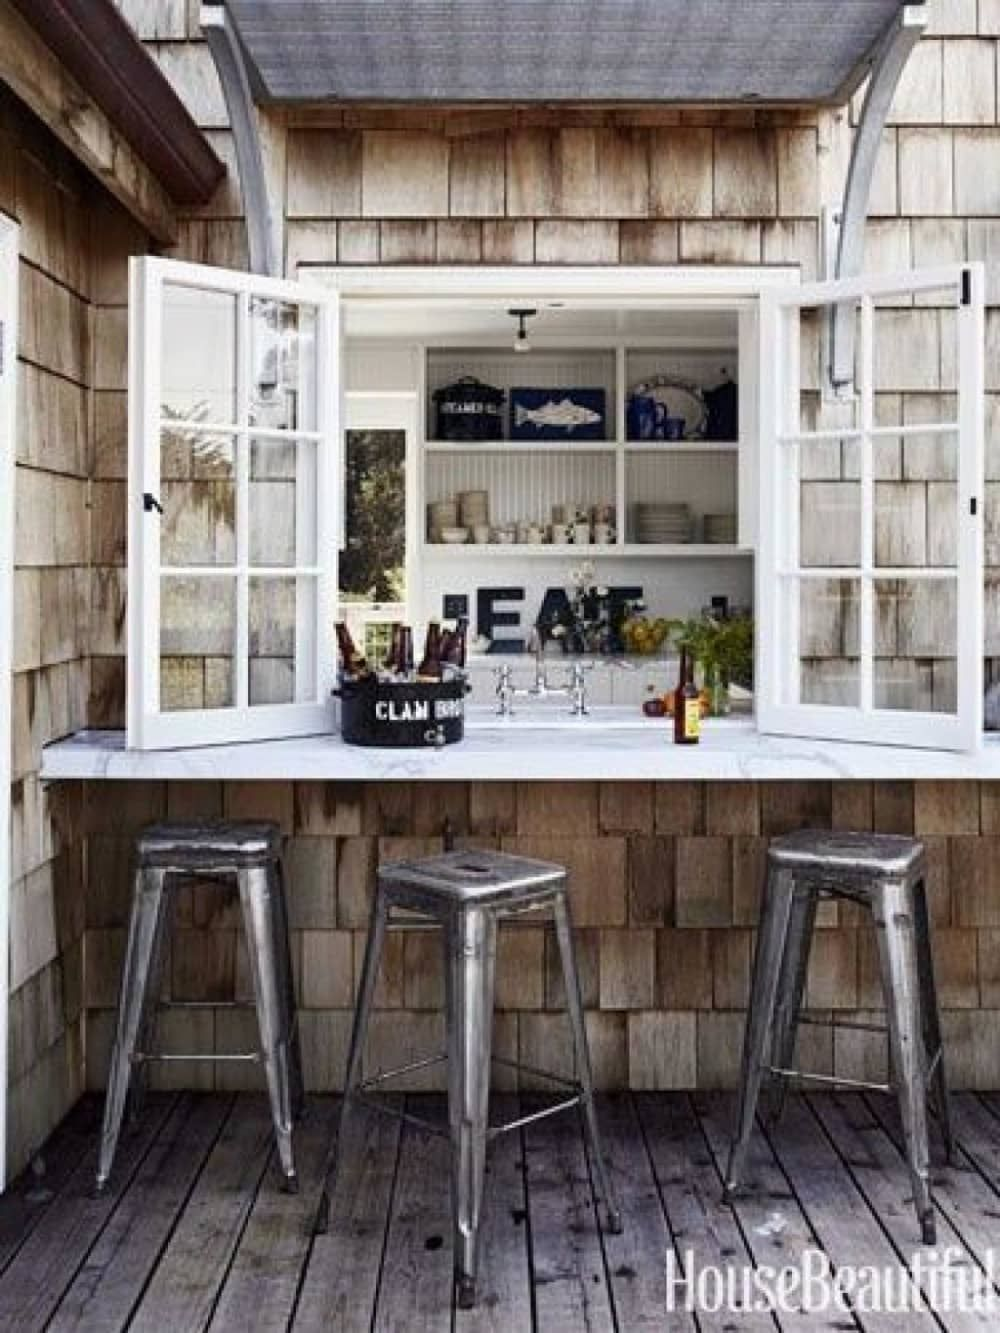 The Very Best Outdoor Bars & Dining DIY Projects for Small Spaces ...